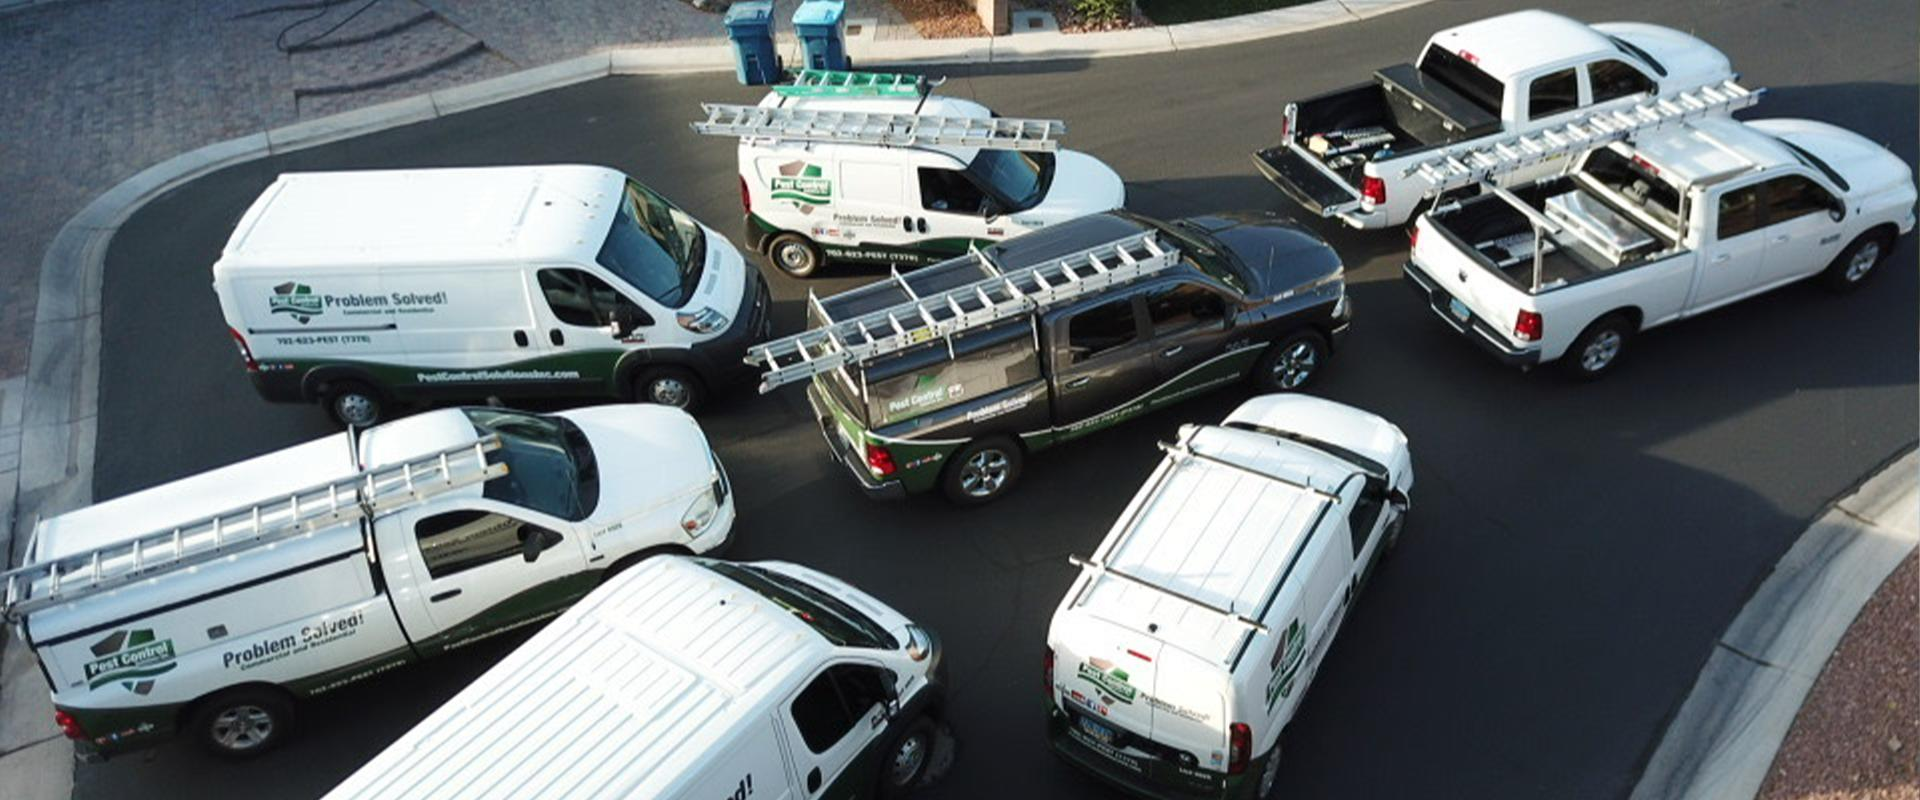 overhead view of pest control solutions vehicles